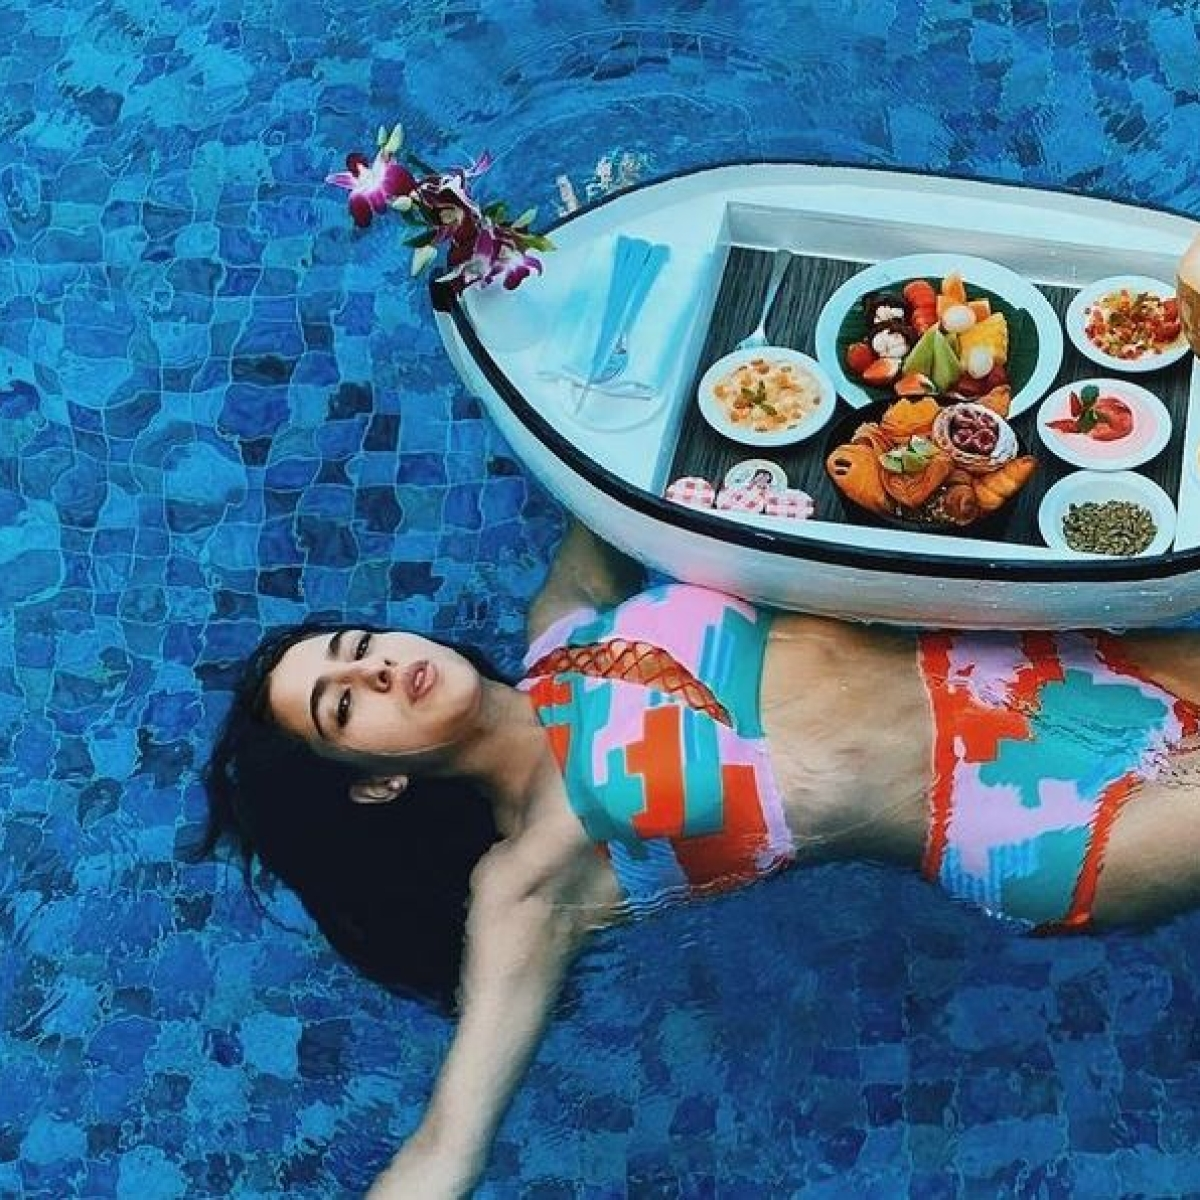 Sara Ali Khan stuns in a bikini, enjoys floating breakfast during Maldives vacay